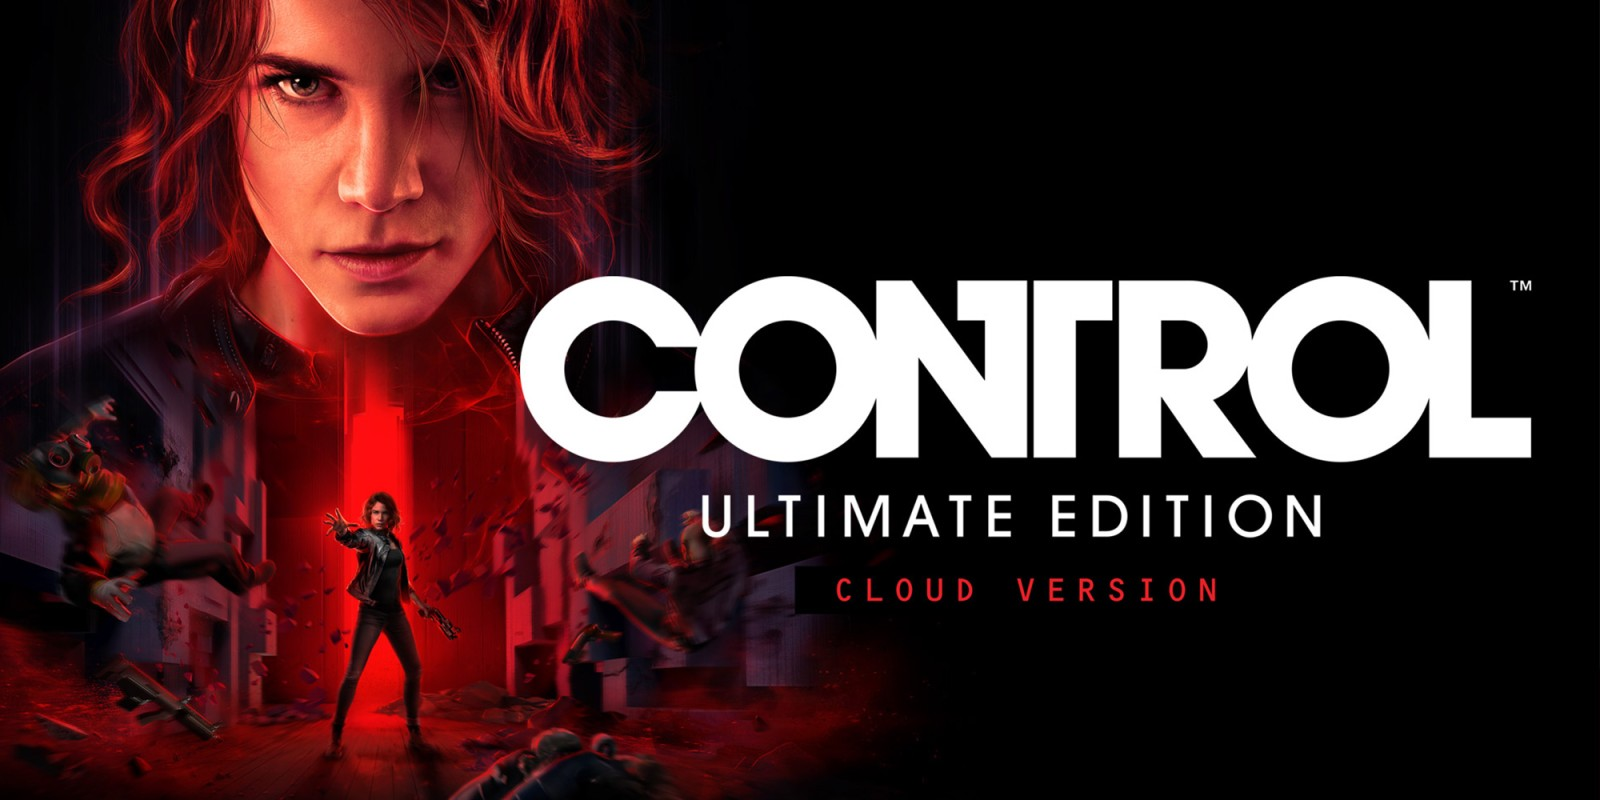 Control: Ultimate Edition for PS5 and Xbox Series X / S will only be released in 2021